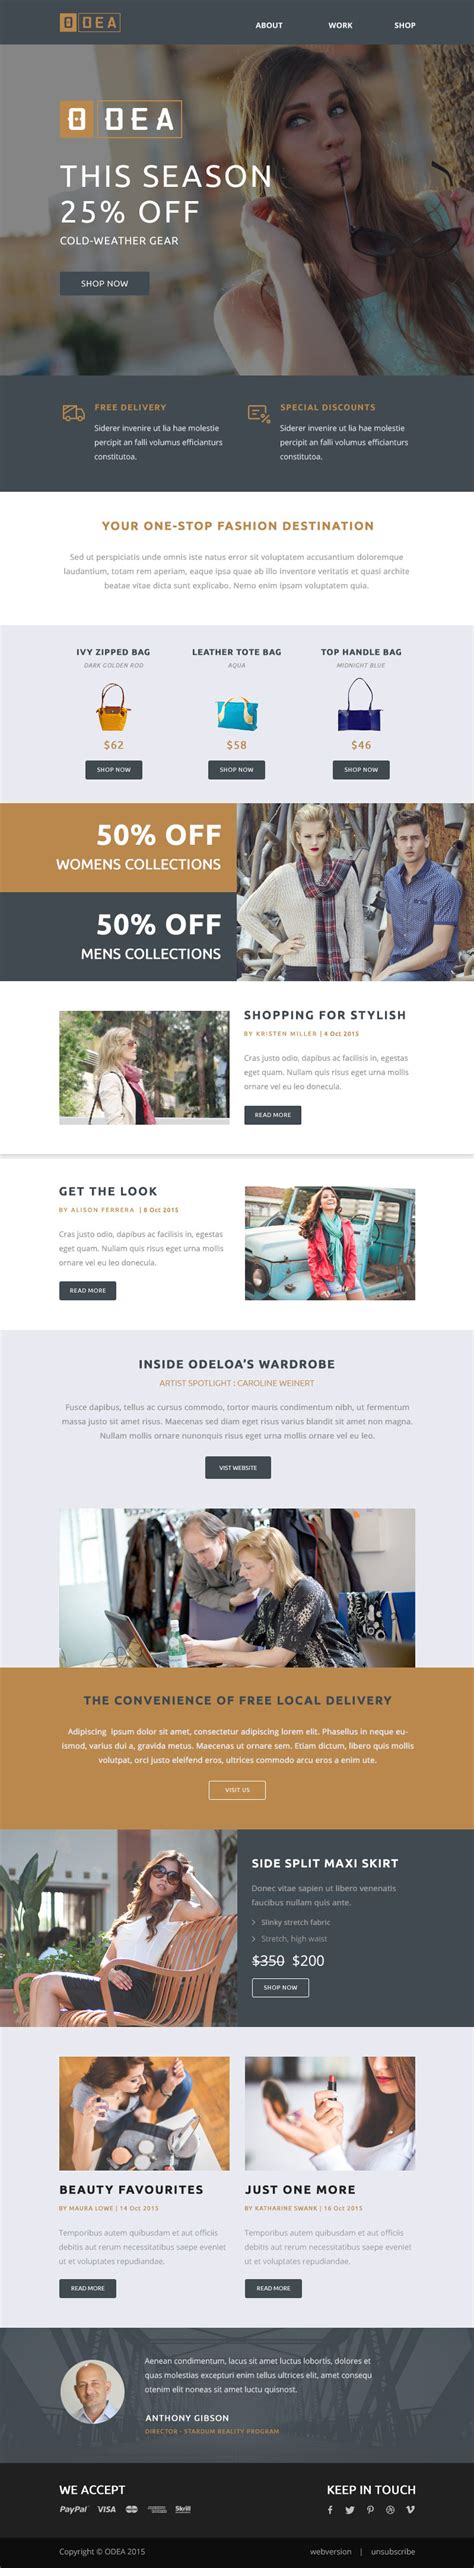 free email newsletter templates psd 187 css author free email newsletter templates psd 187 css author